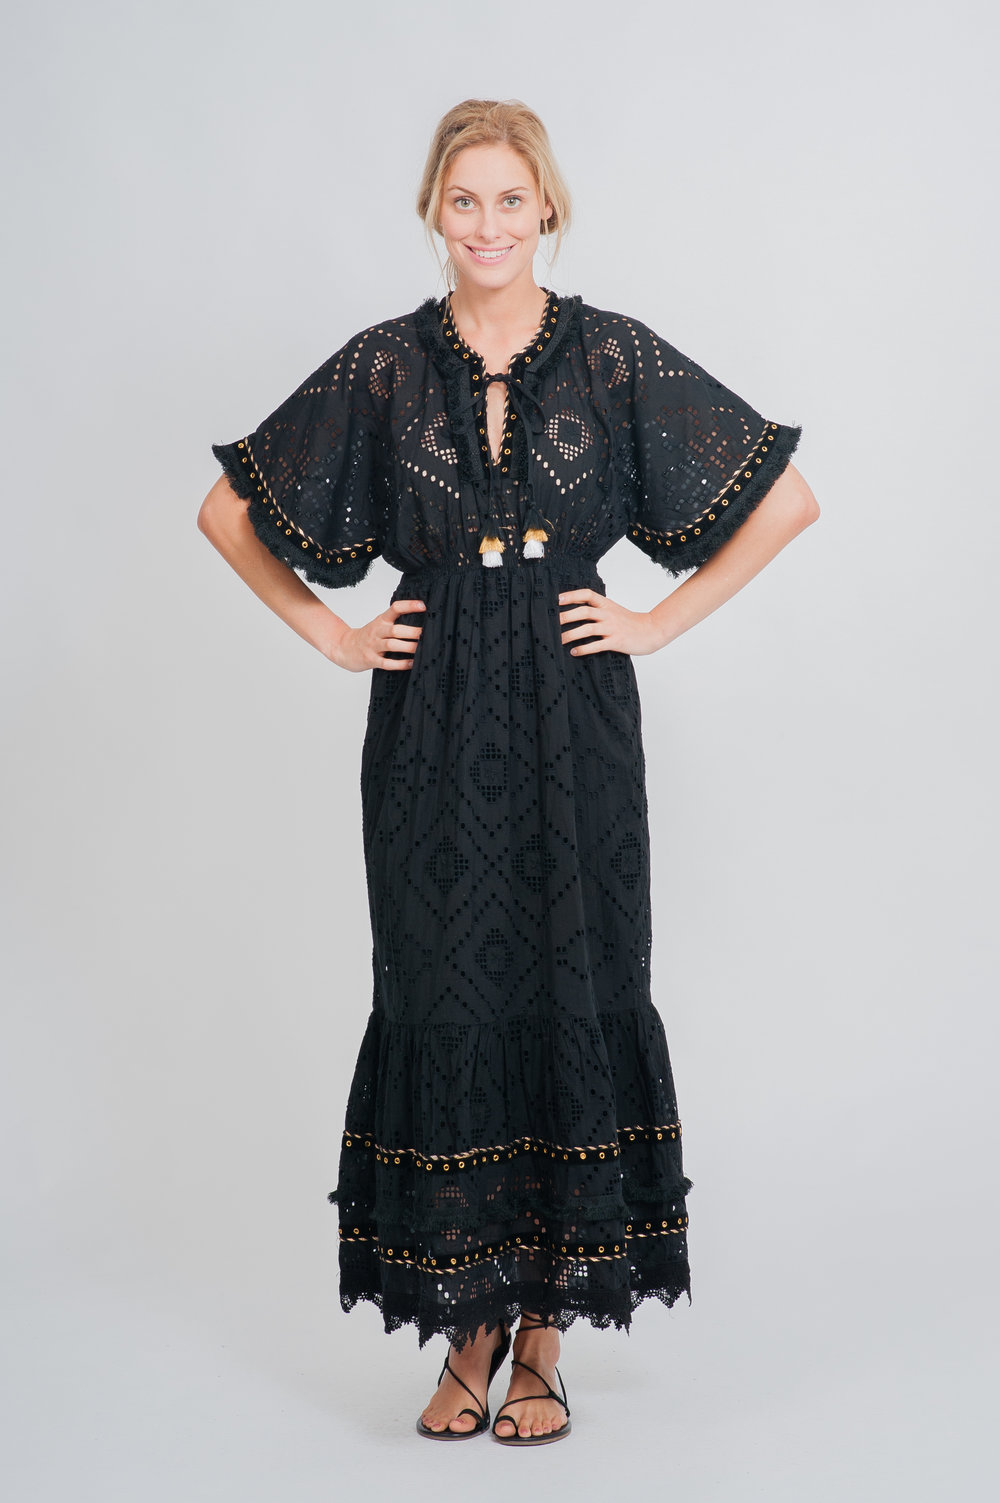 SS19-31 LA MANDALA CUTWORK LACE MAXI KAFTAN DRESS